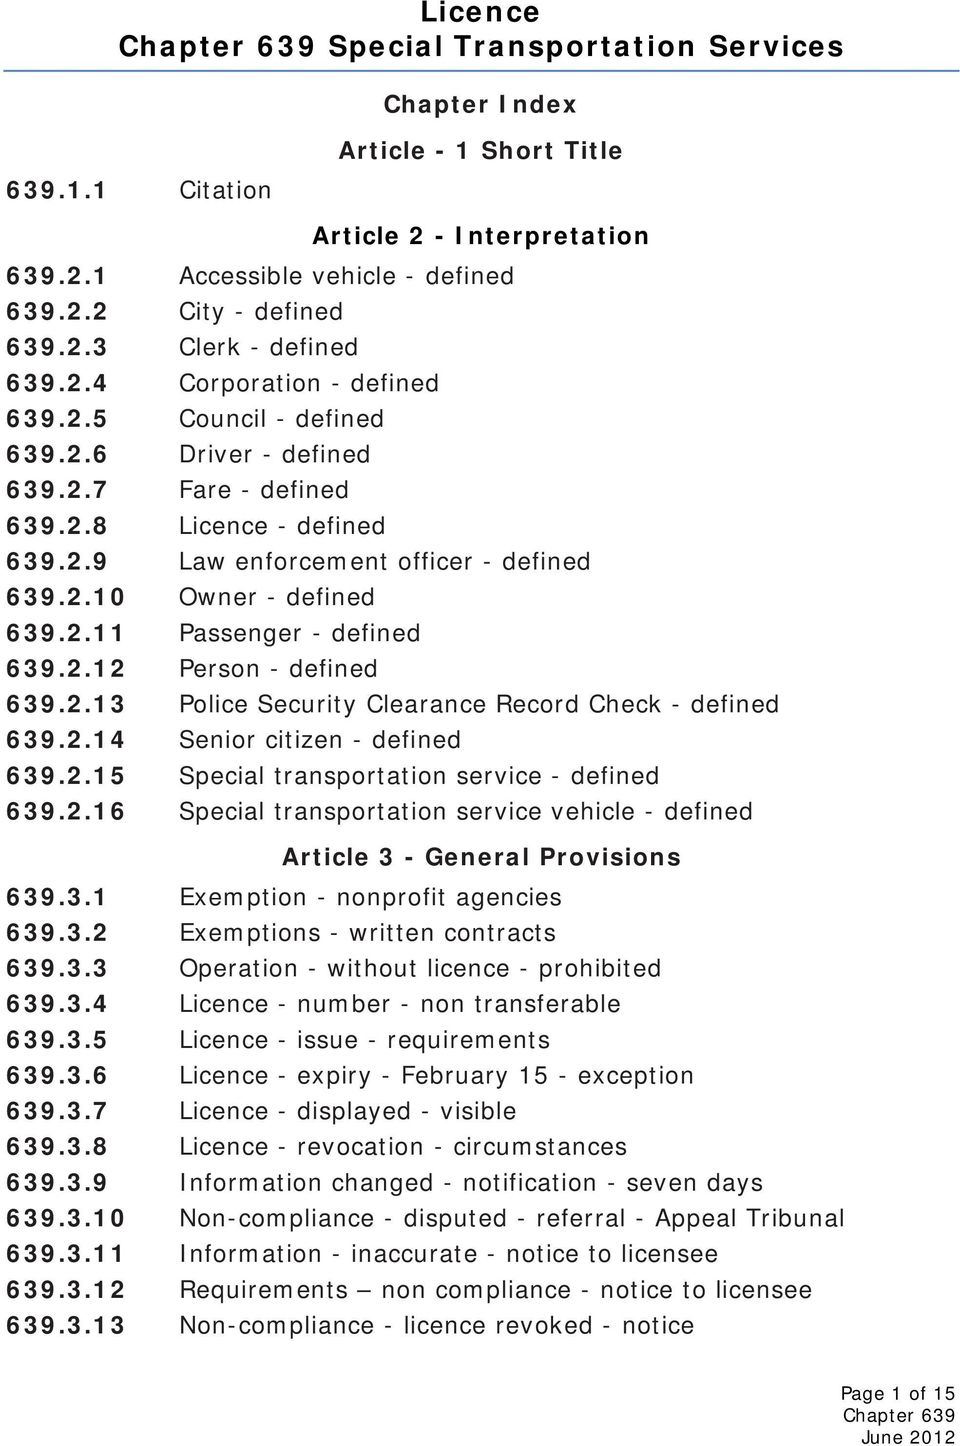 2.12 Person - defined 639.2.13 Police Security Clearance Record Check - defined 639.2.14 Senior citizen - defined 639.2.15 Special transportation service - defined 639.2.16 Special transportation service vehicle - defined Article 3 - General Provisions 639.